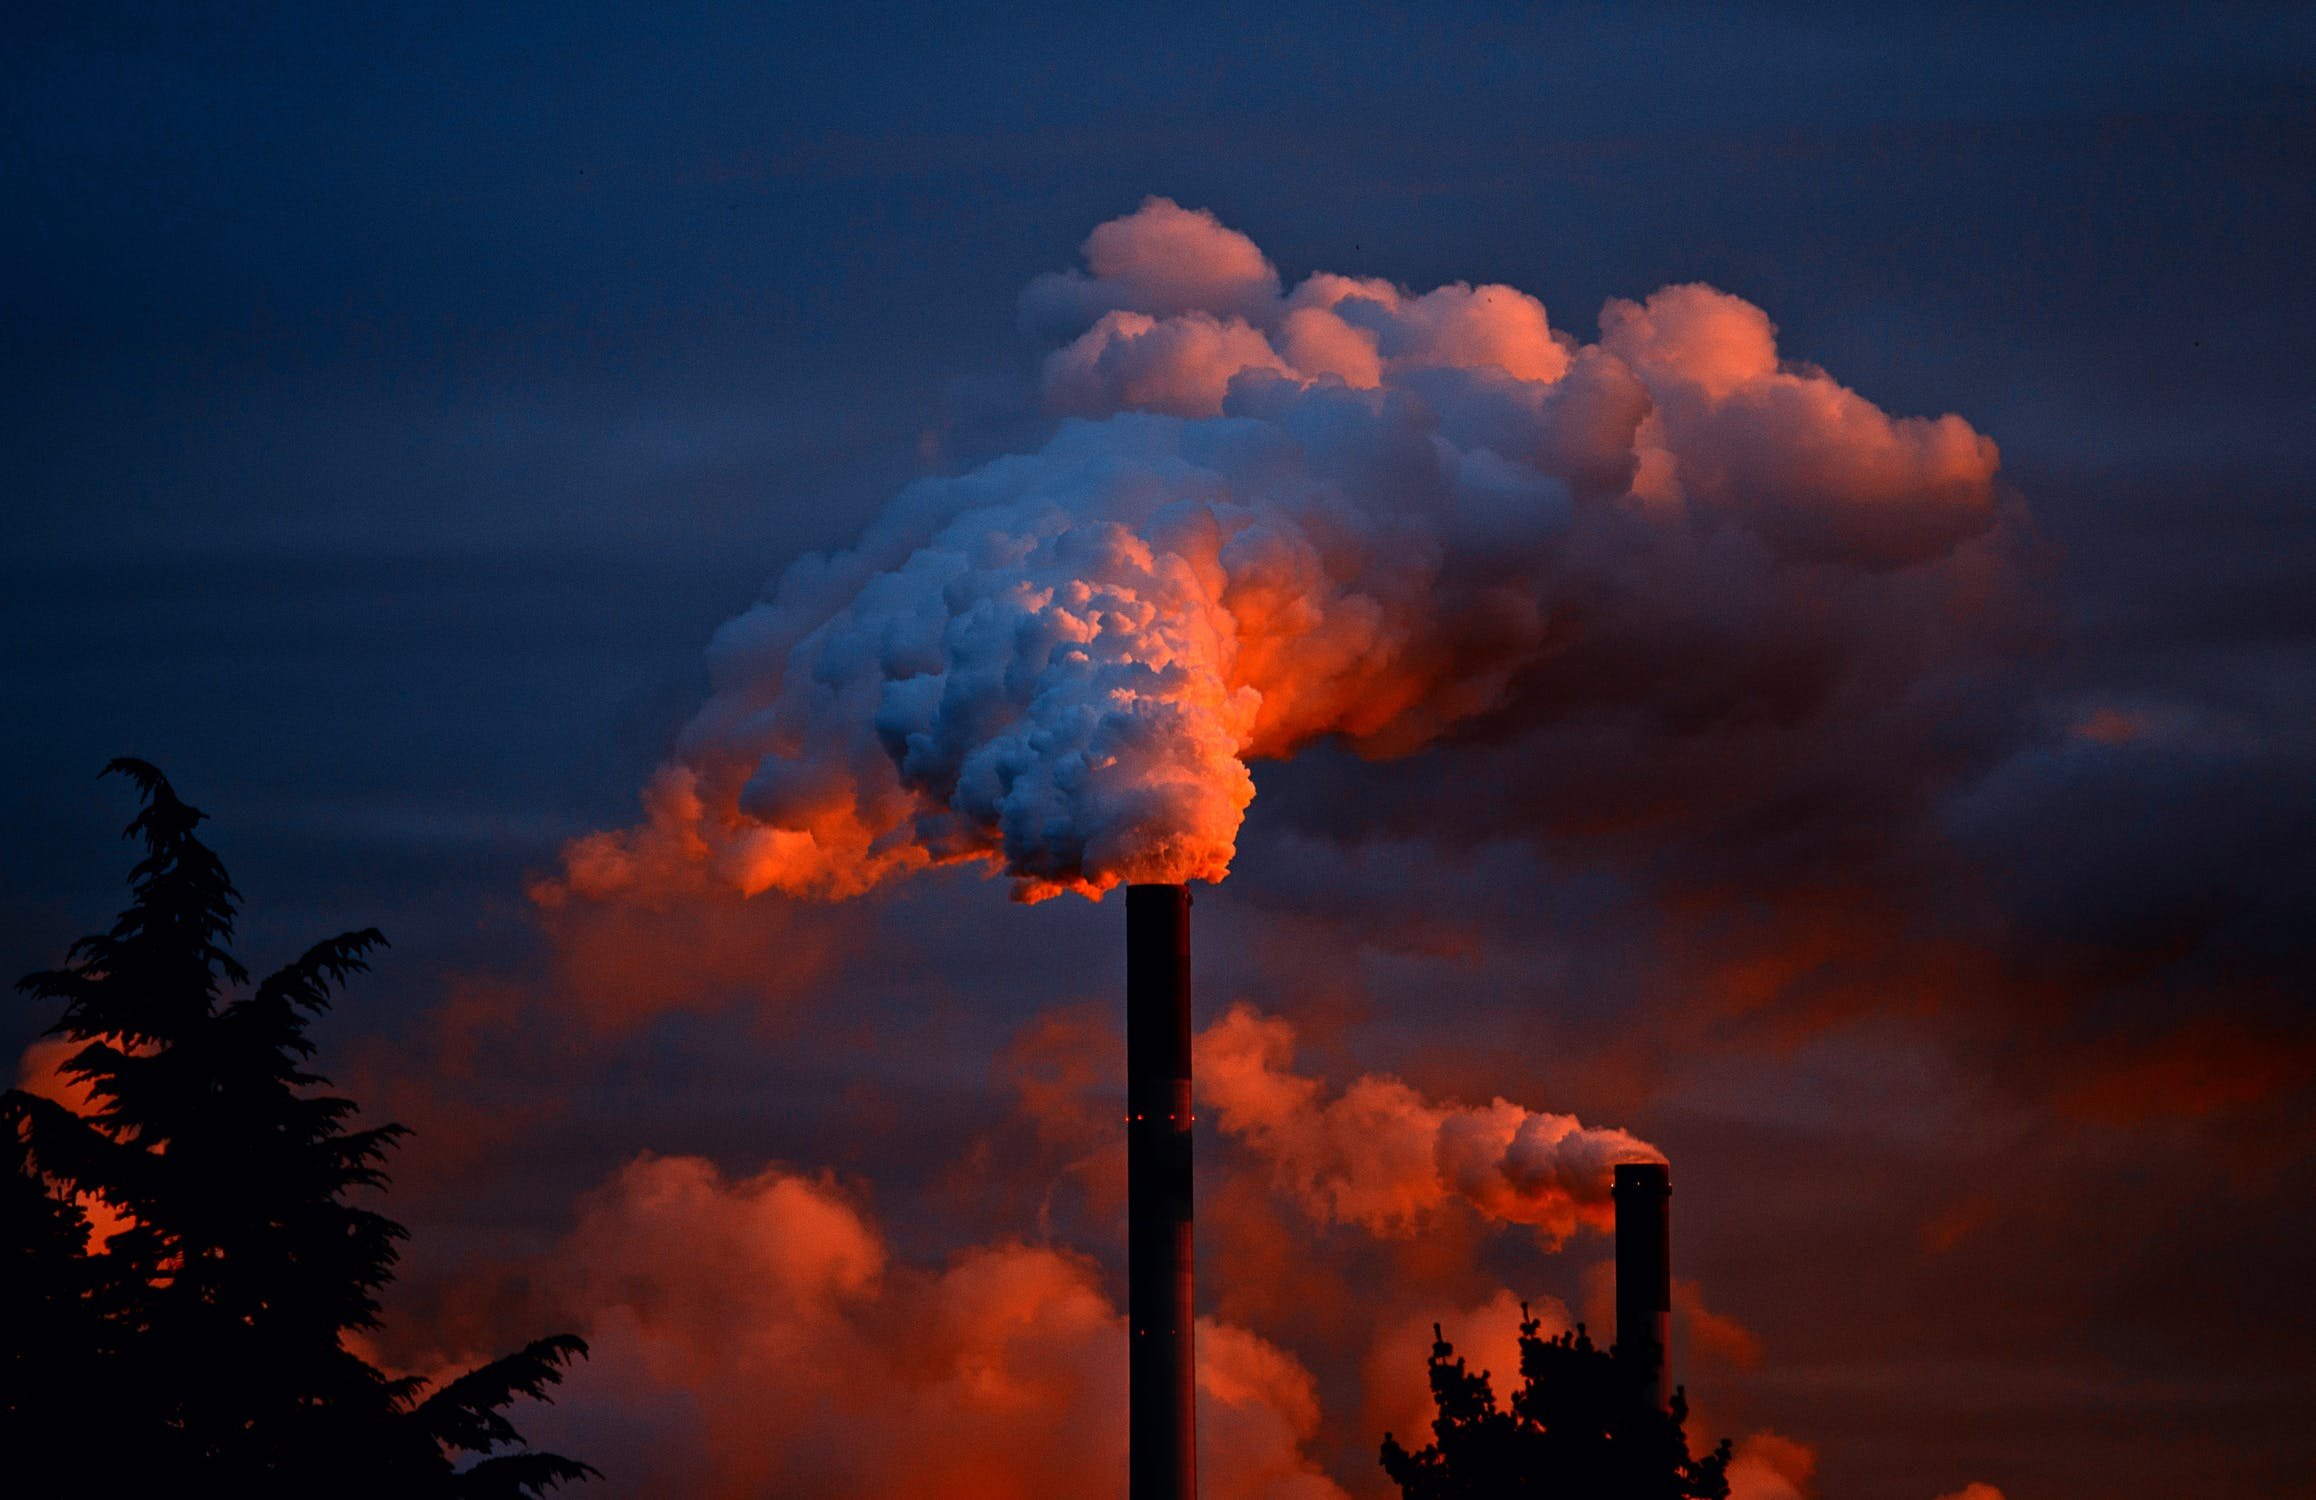 Atmospheric Carbon Levels Reach 3 Million Year Highs Ahead of COP26